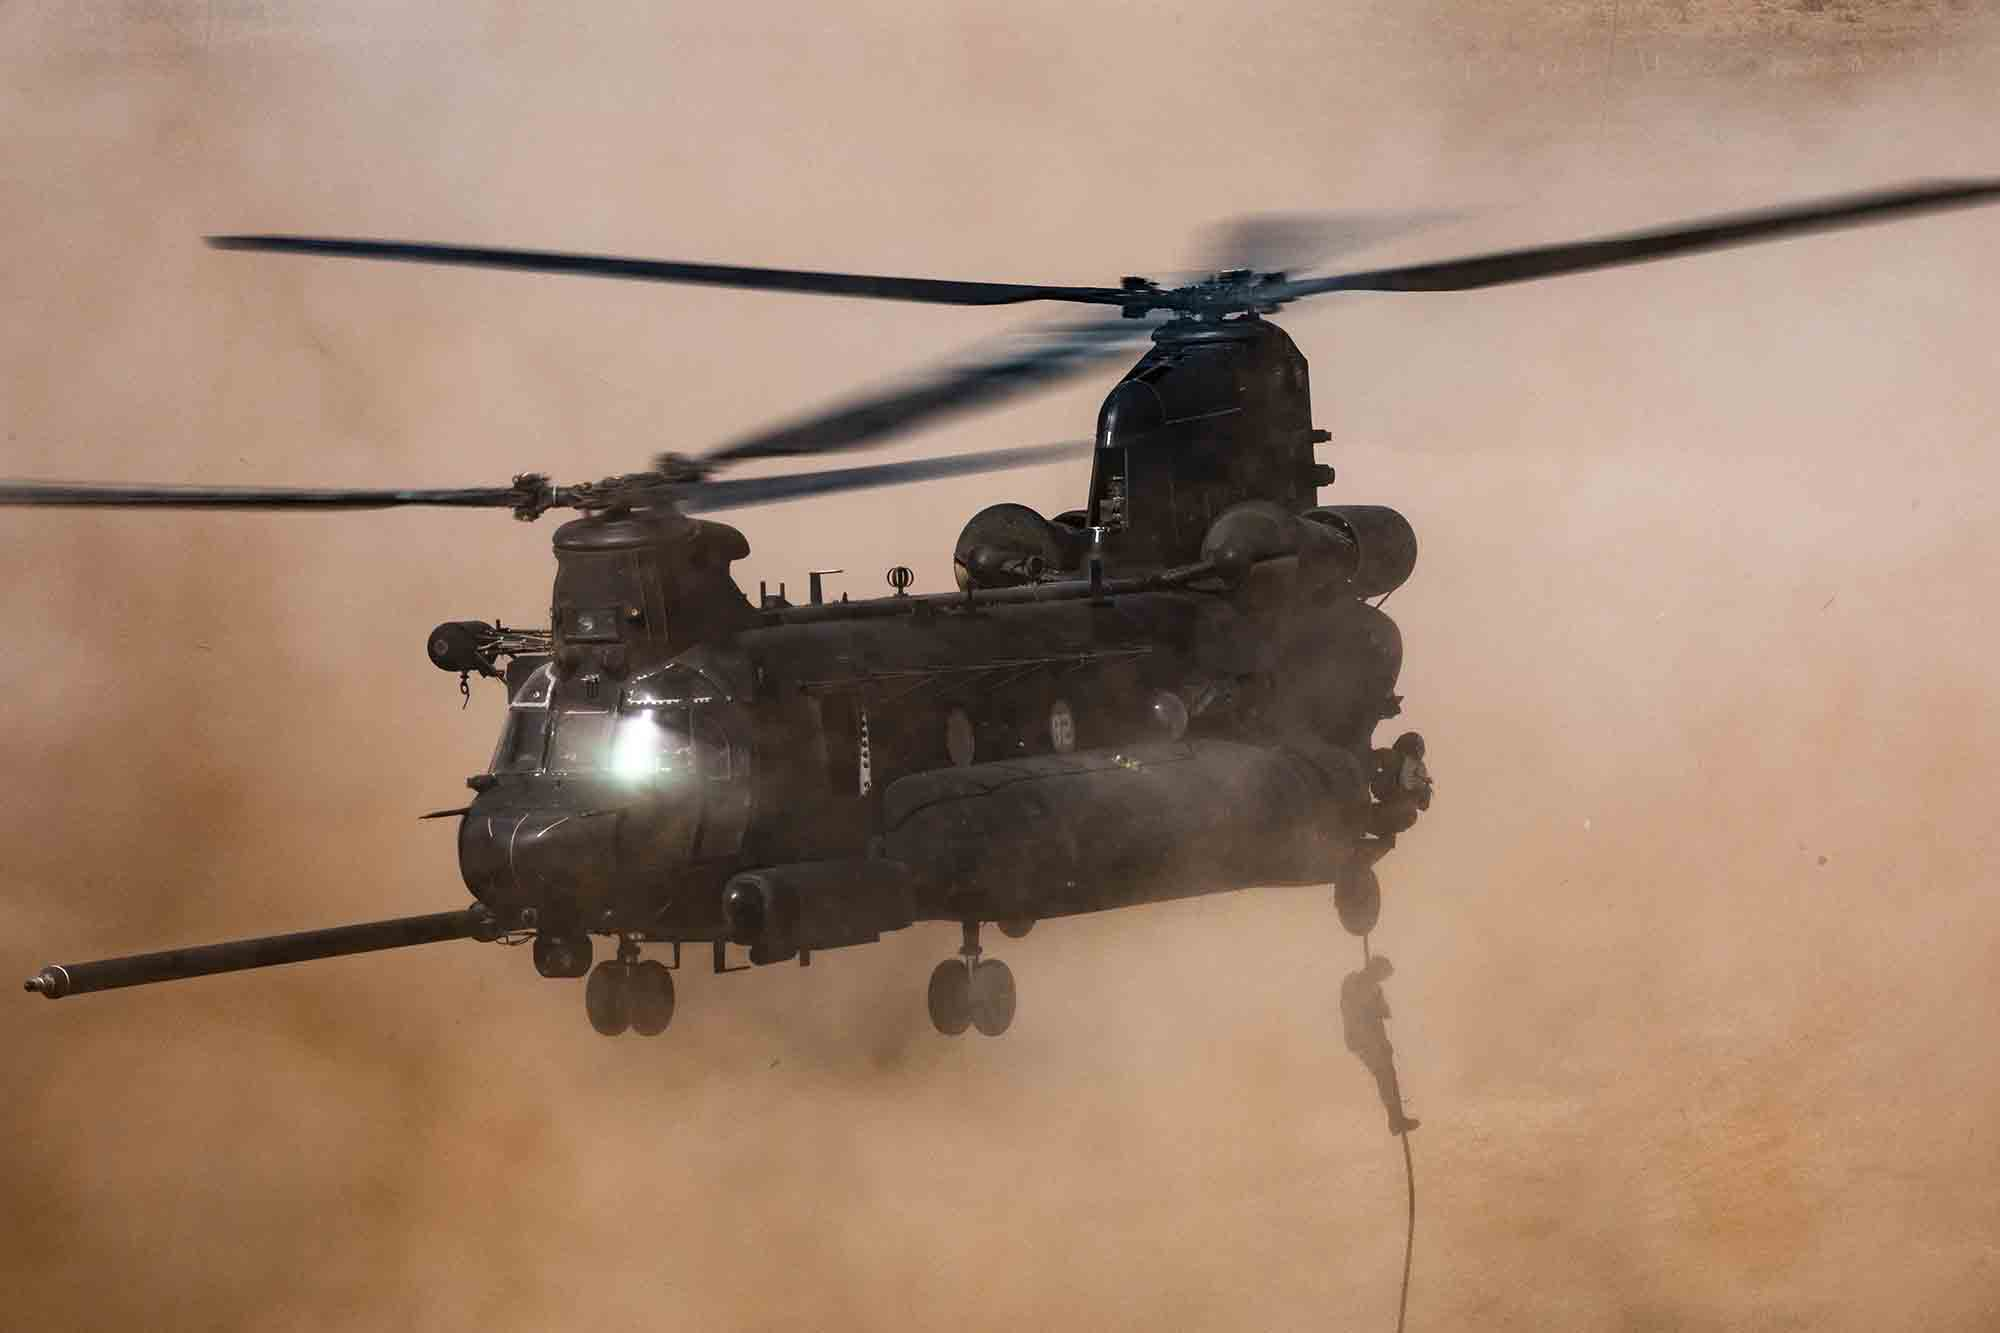 U.S. Army soldiers assigned to 19th Special Forces Group (Airborne), and Royal Moroccan Army soldiers fast-rope out of a CH-47 Chinook in Tifnit, Morocco, on June 14, 2021, during African Lion 2021. (Spc. Brendan Nunez/Army)